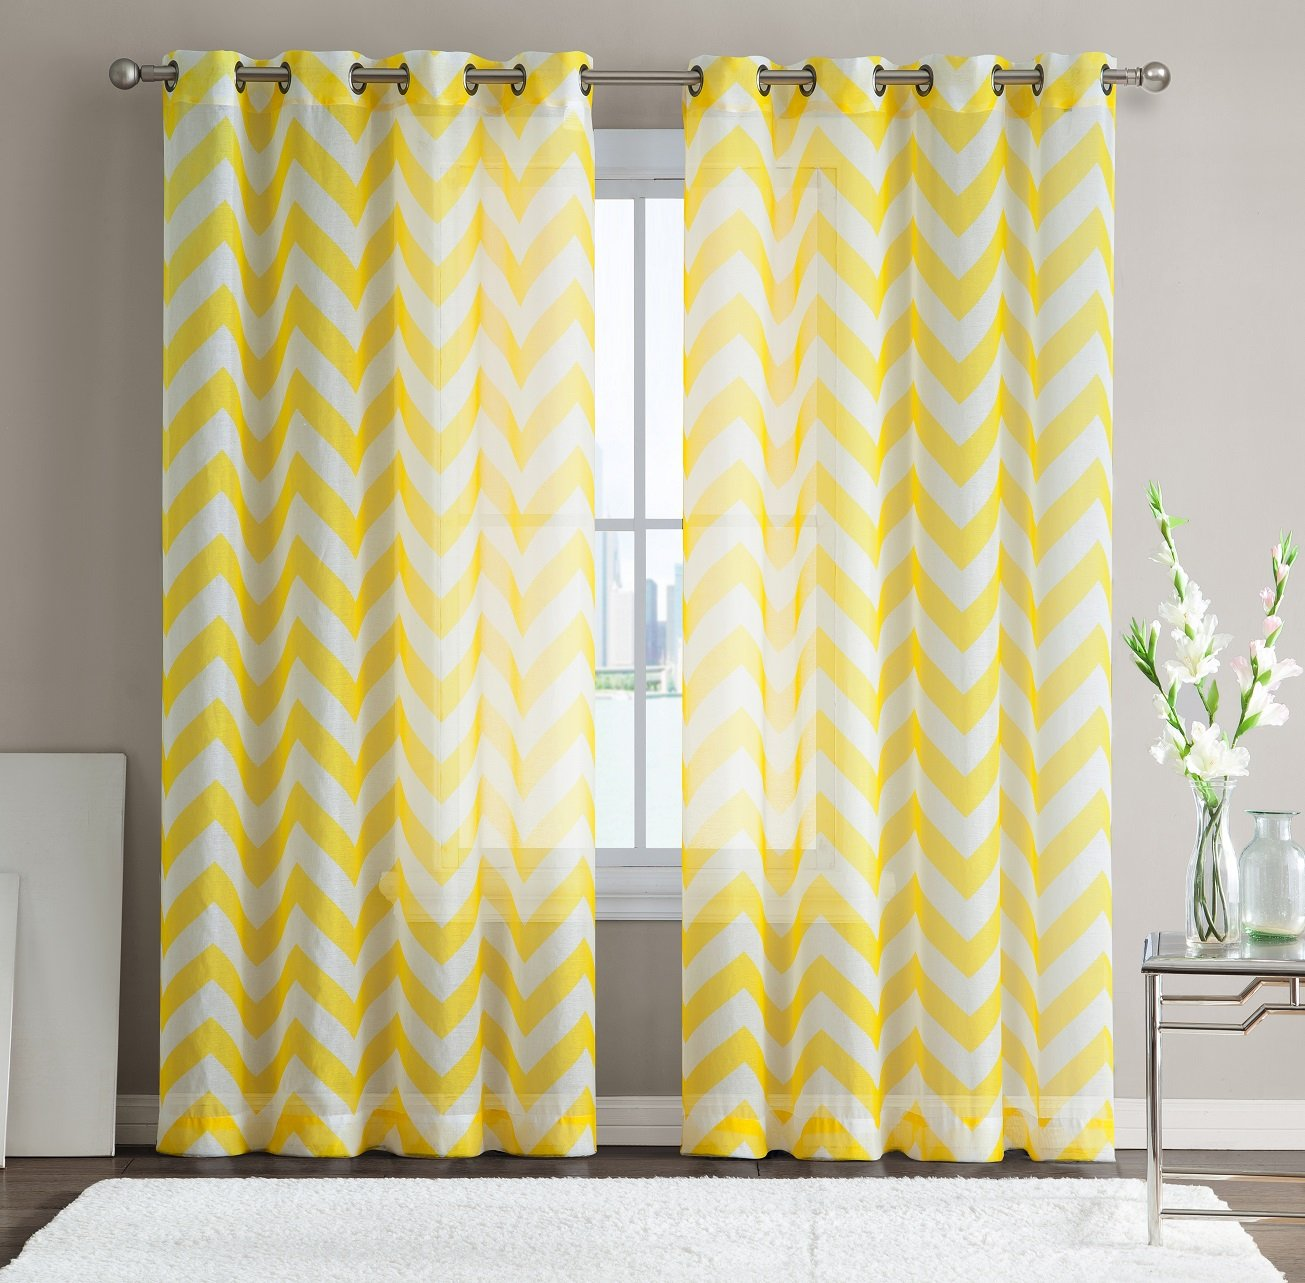 HLC.ME Chevron Printed Premium Window Sheer Curtain Voile Panels Bright Yellow